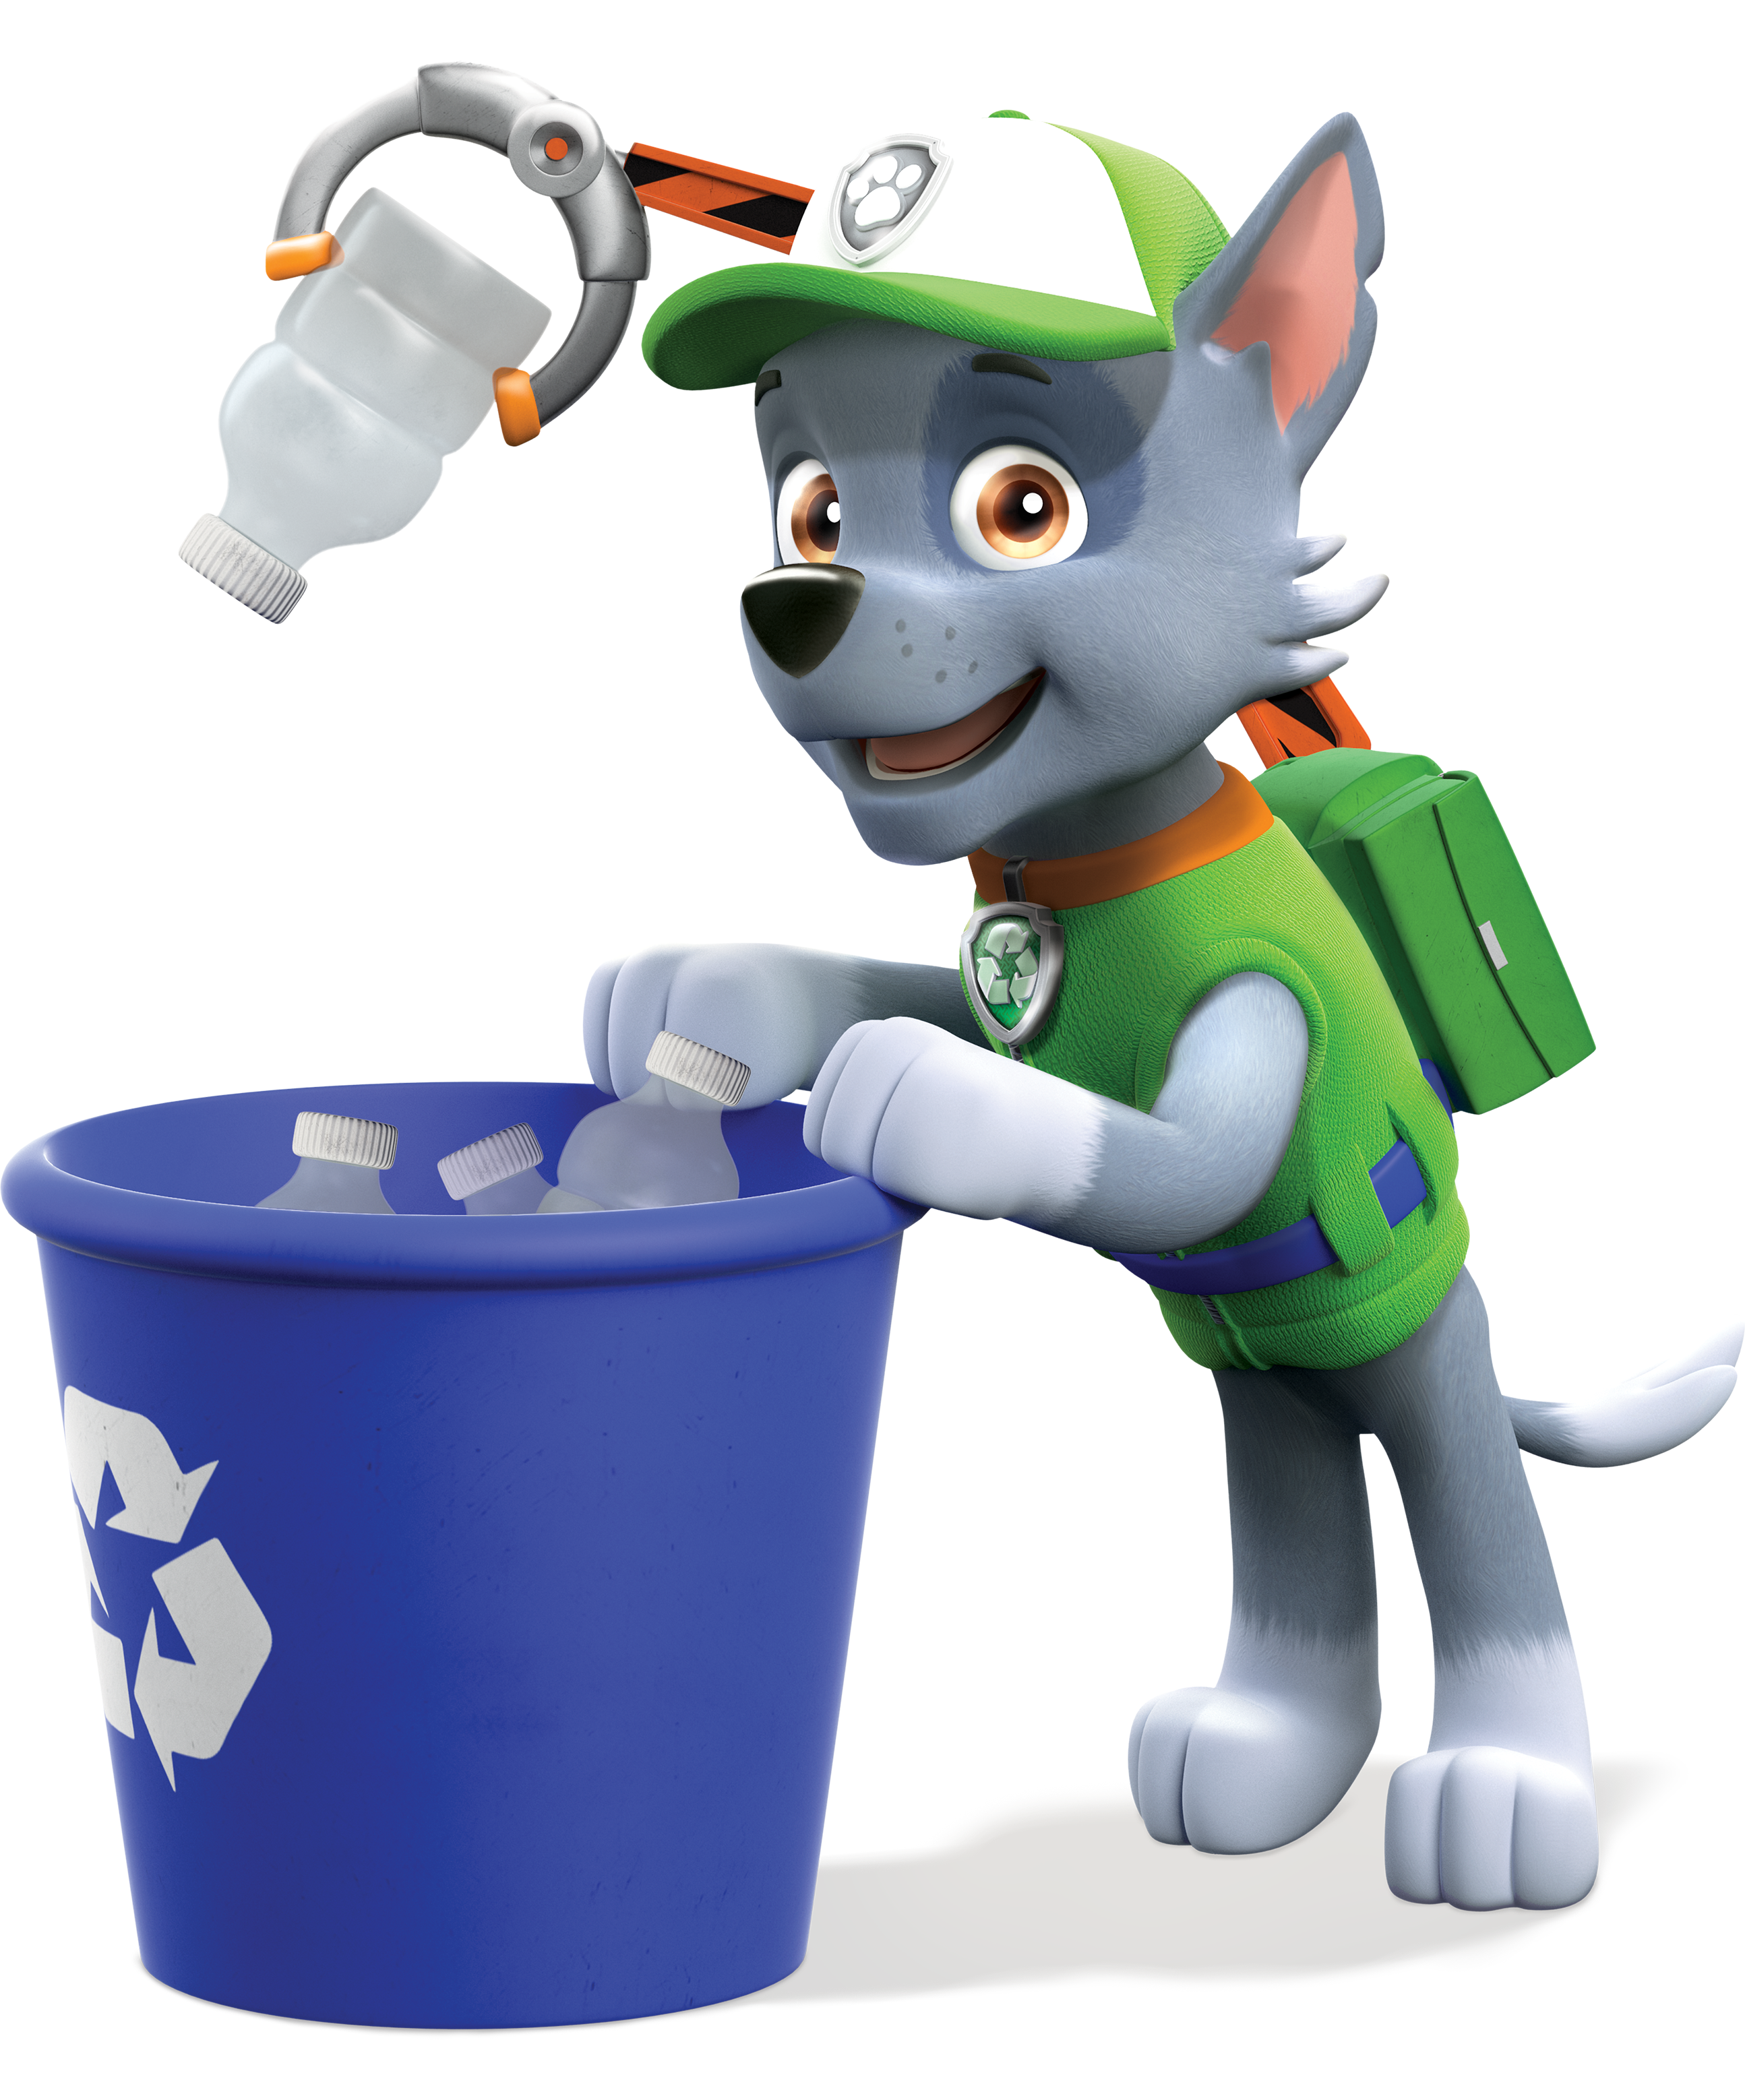 Printable paw patrol clipart picture freeuse stock Rocky/Gallery | Pinterest | Paw patrol, Paw patrol rocky and Paw ... picture freeuse stock